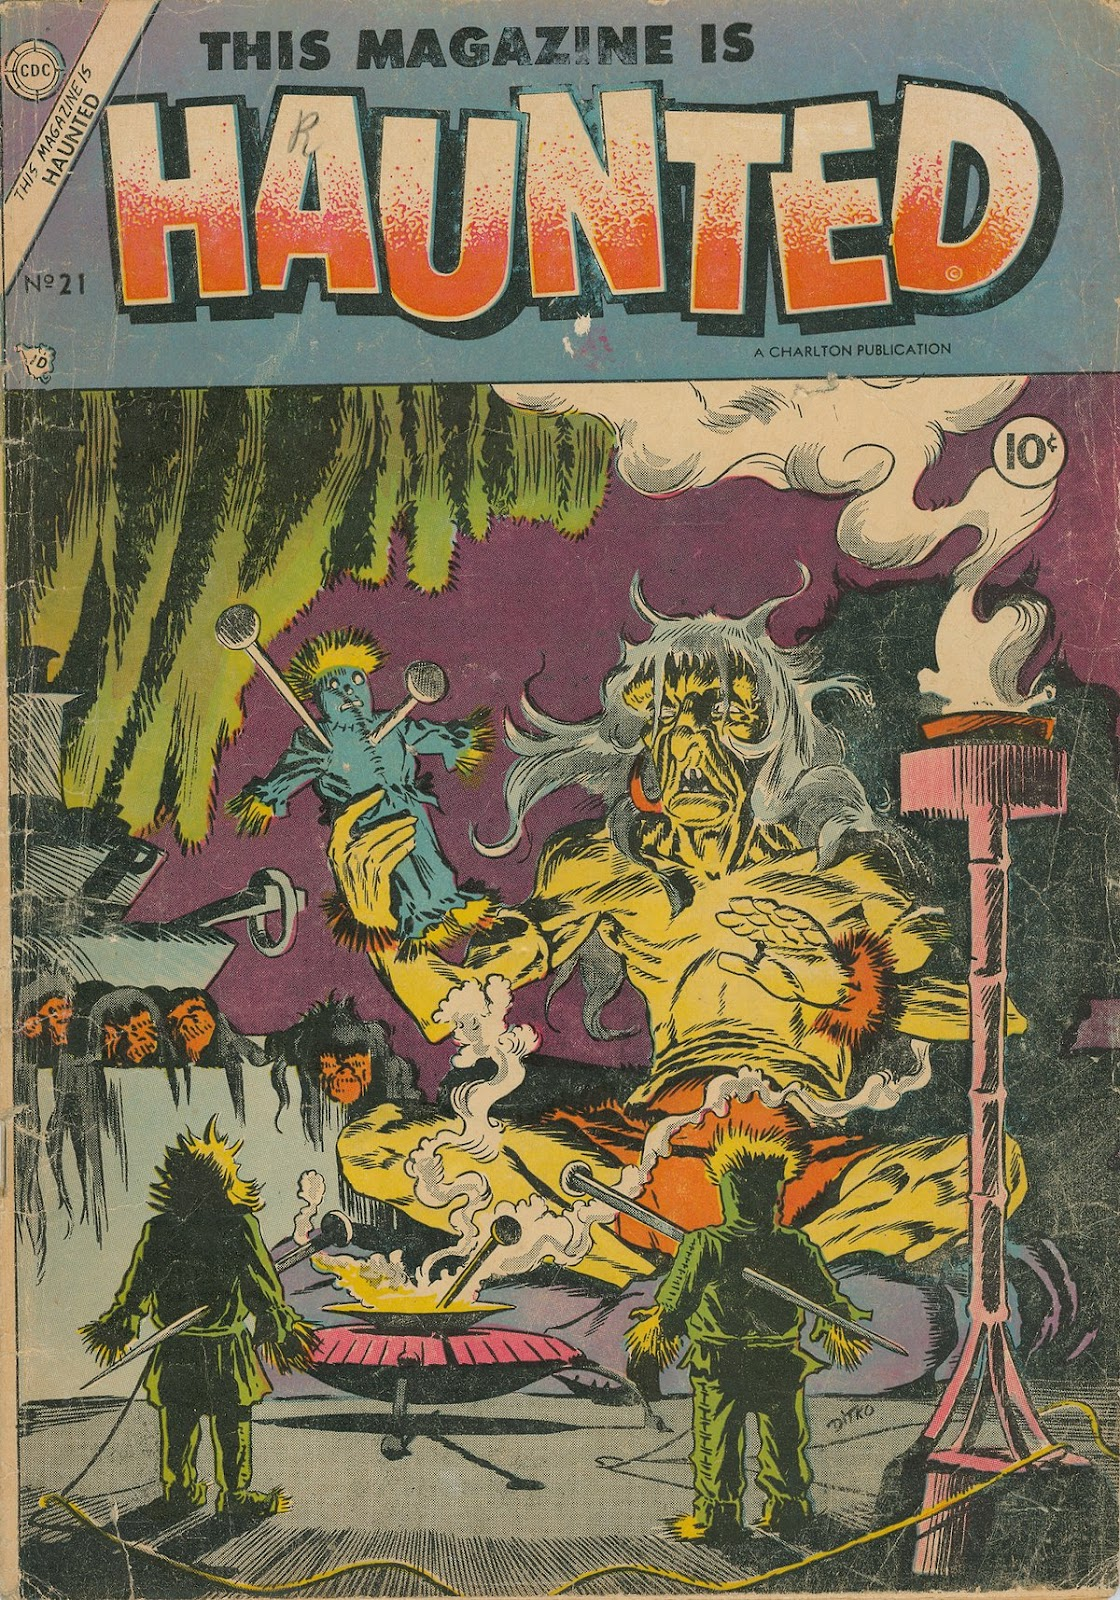 Read online This Magazine Is Haunted comic -  Issue #21 - 1